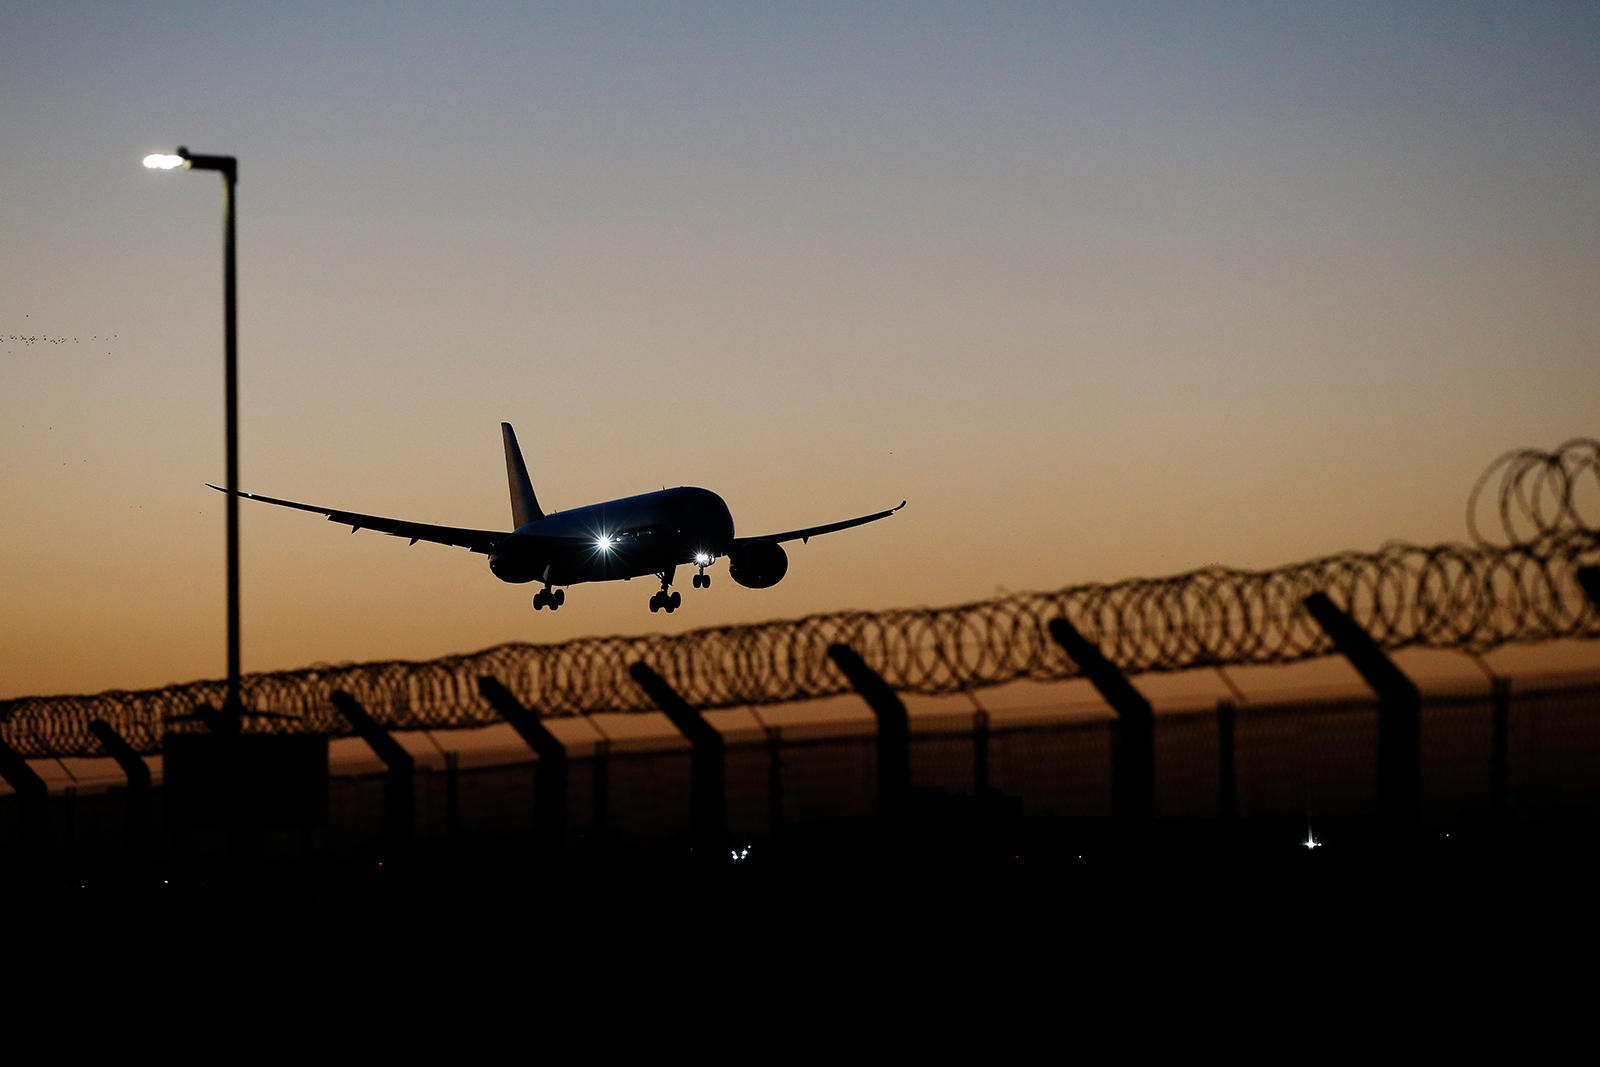 A plane at Heathrow Airport on February 26, in London.